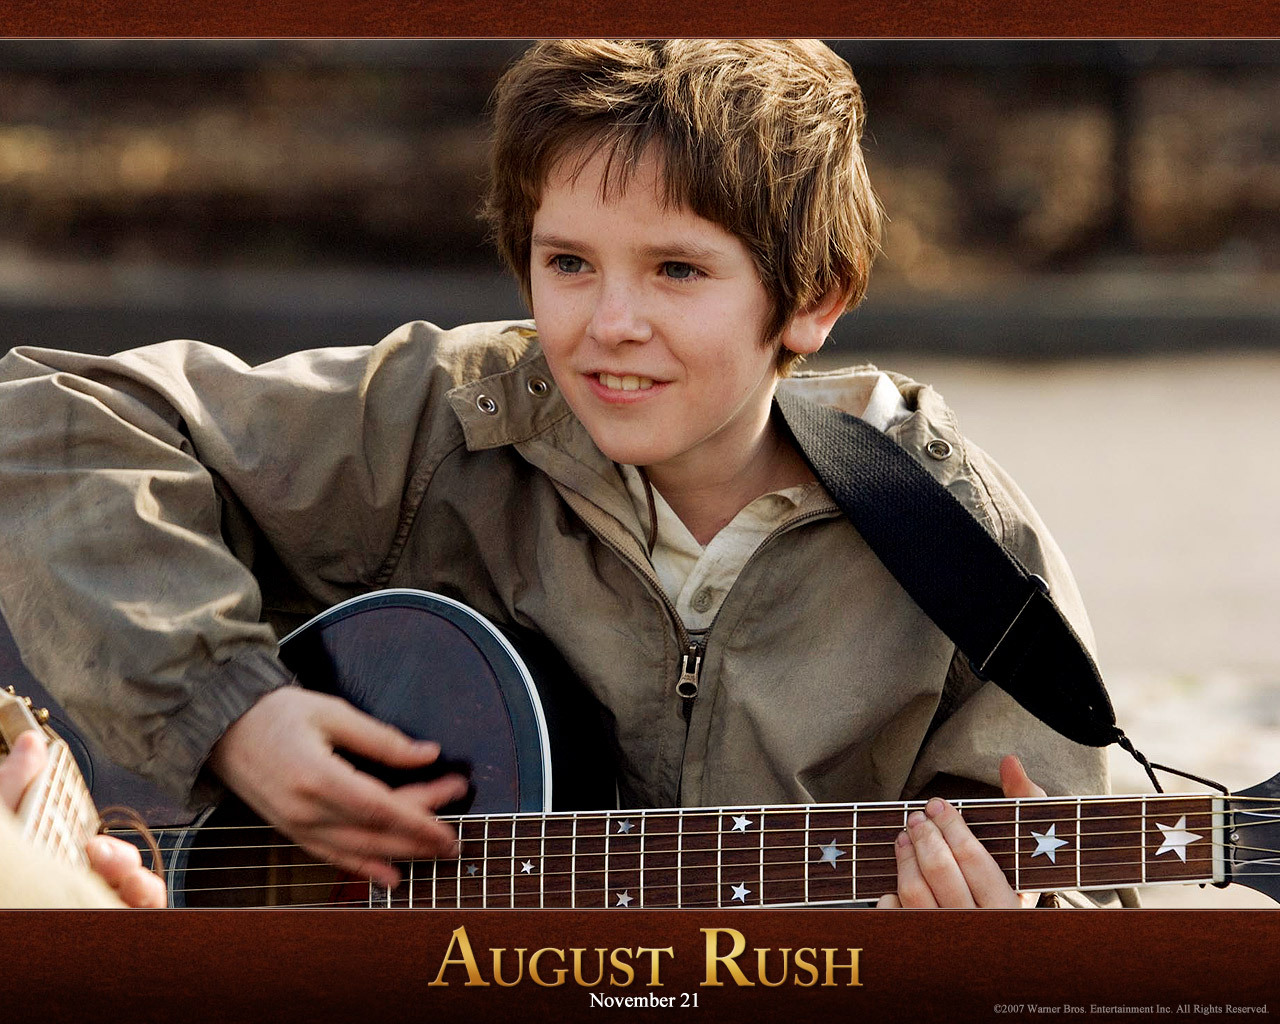 August rush images august rush hd wallpaper and background photos august rush images august rush hd wallpaper and background photos voltagebd Image collections